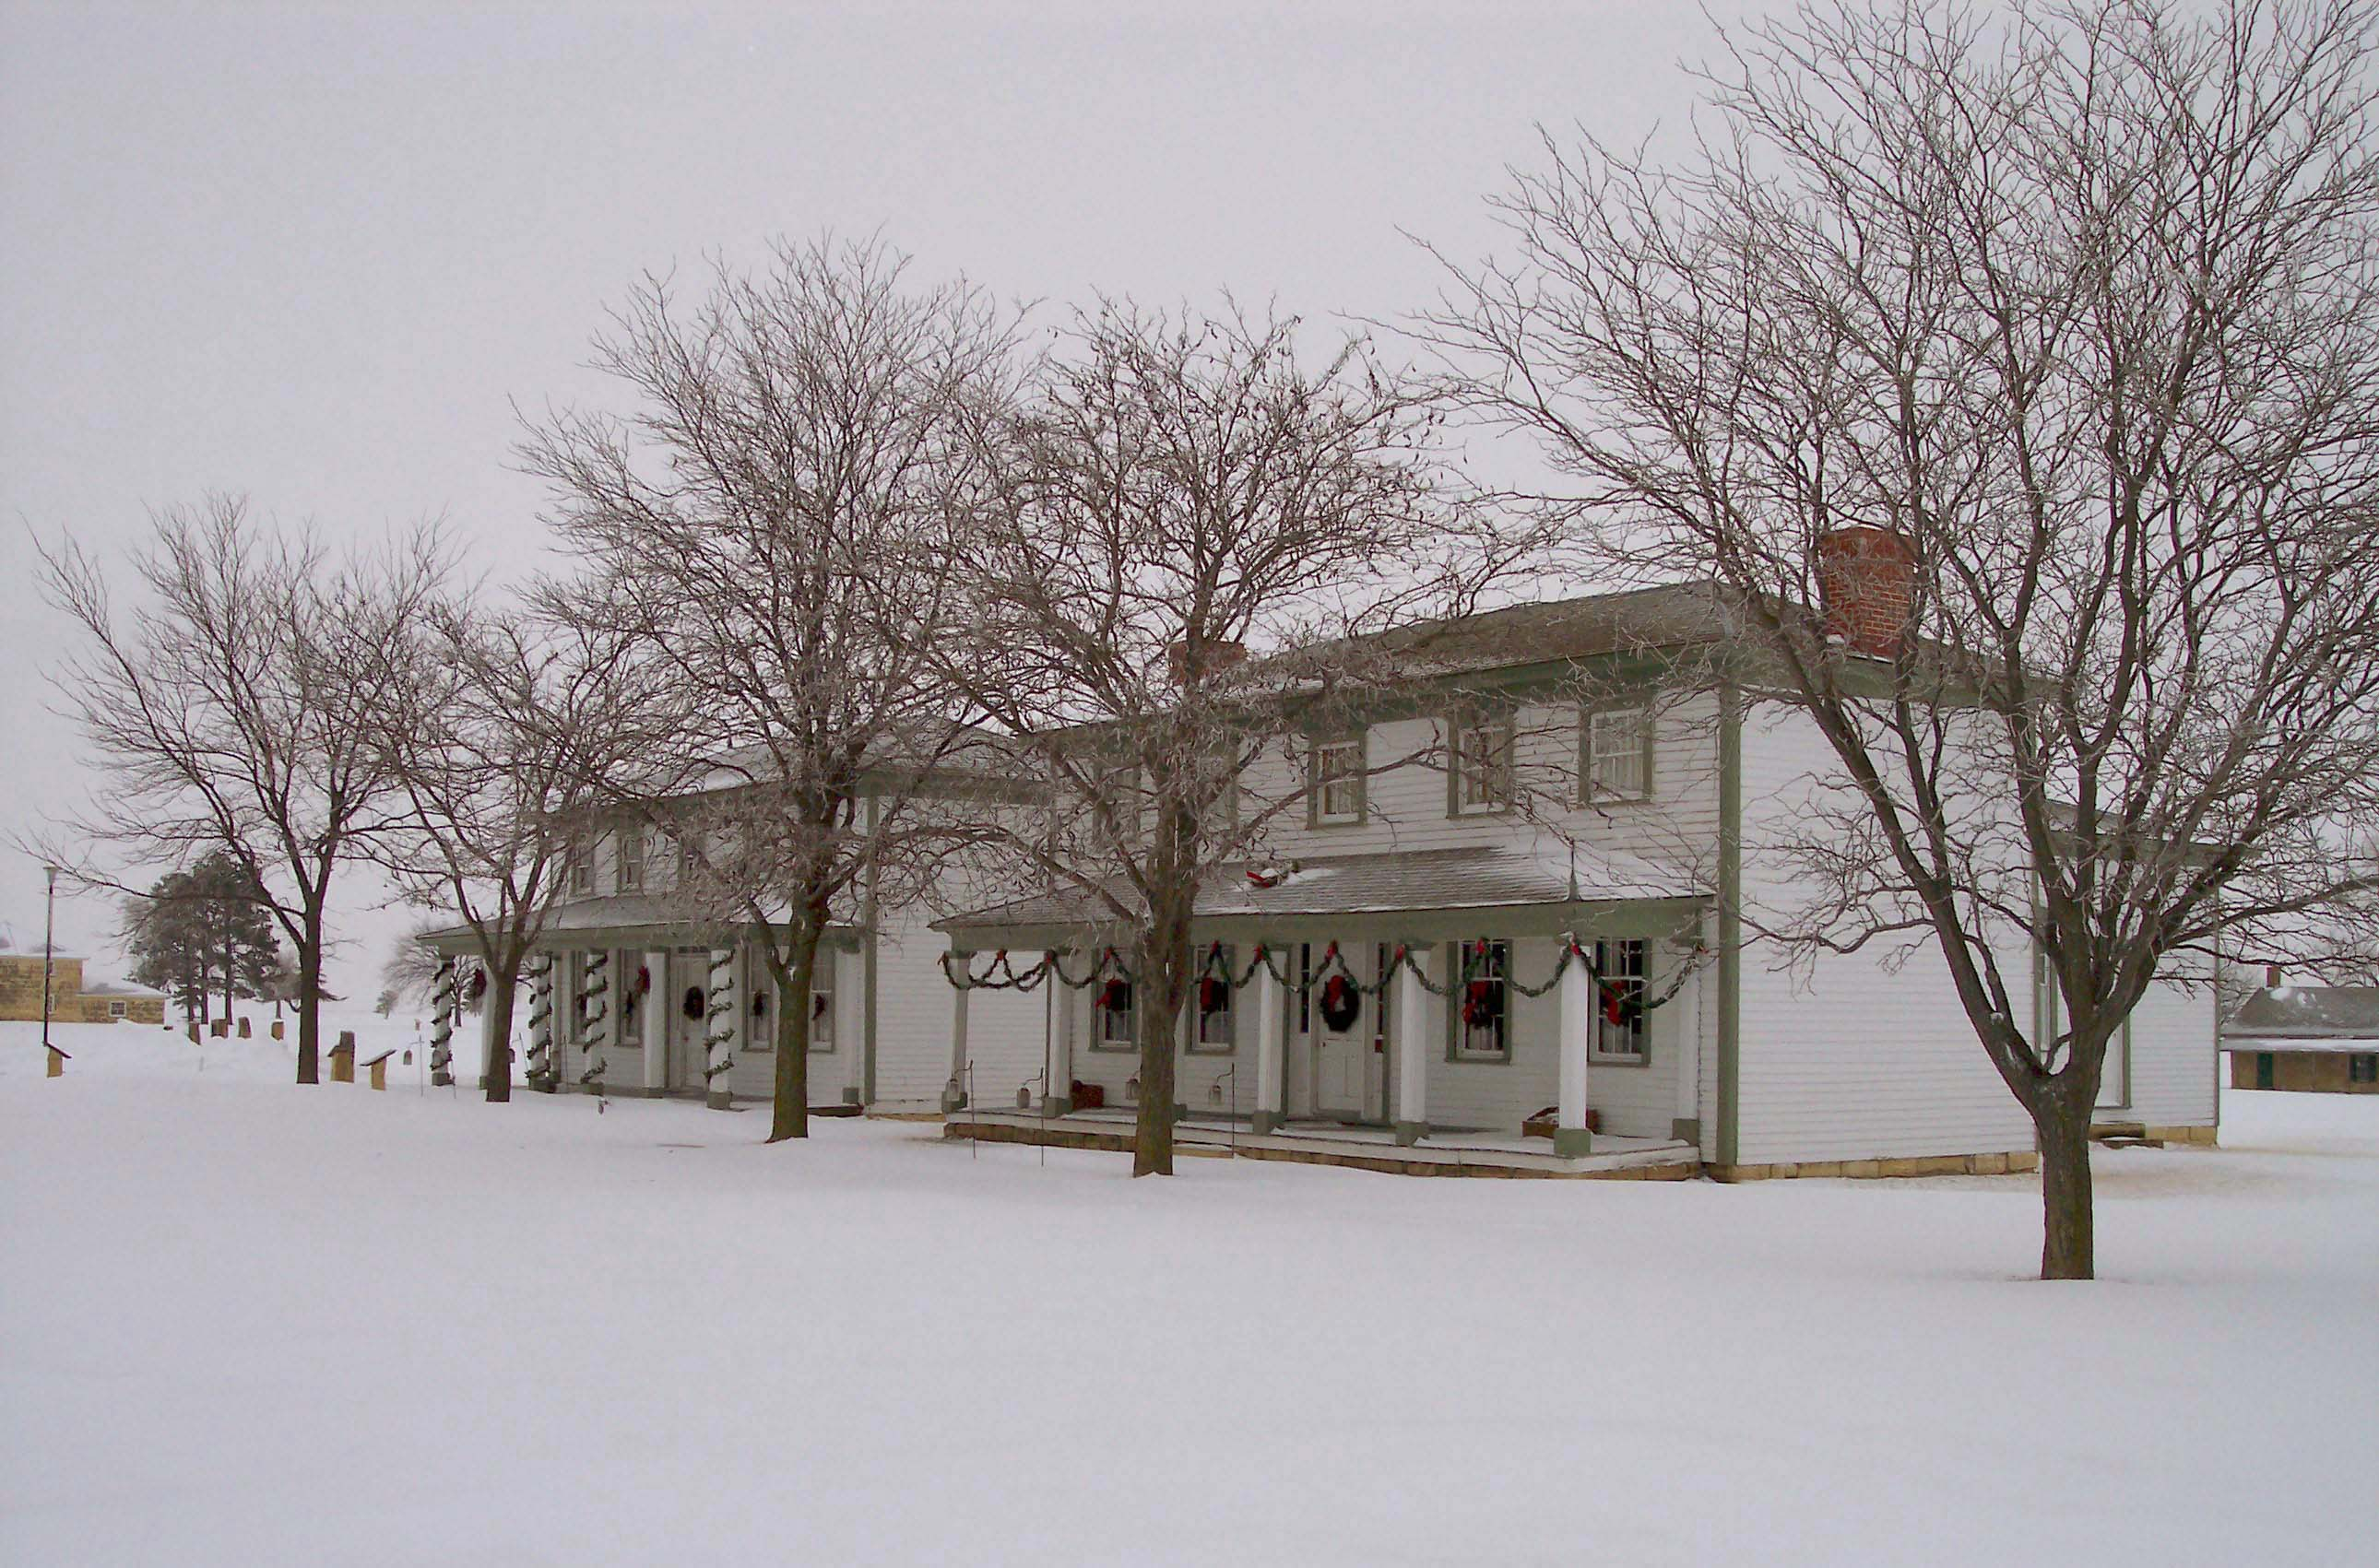 Exterior of Fort Hays officers' quarters, decorated for Christmas with snow on ground.